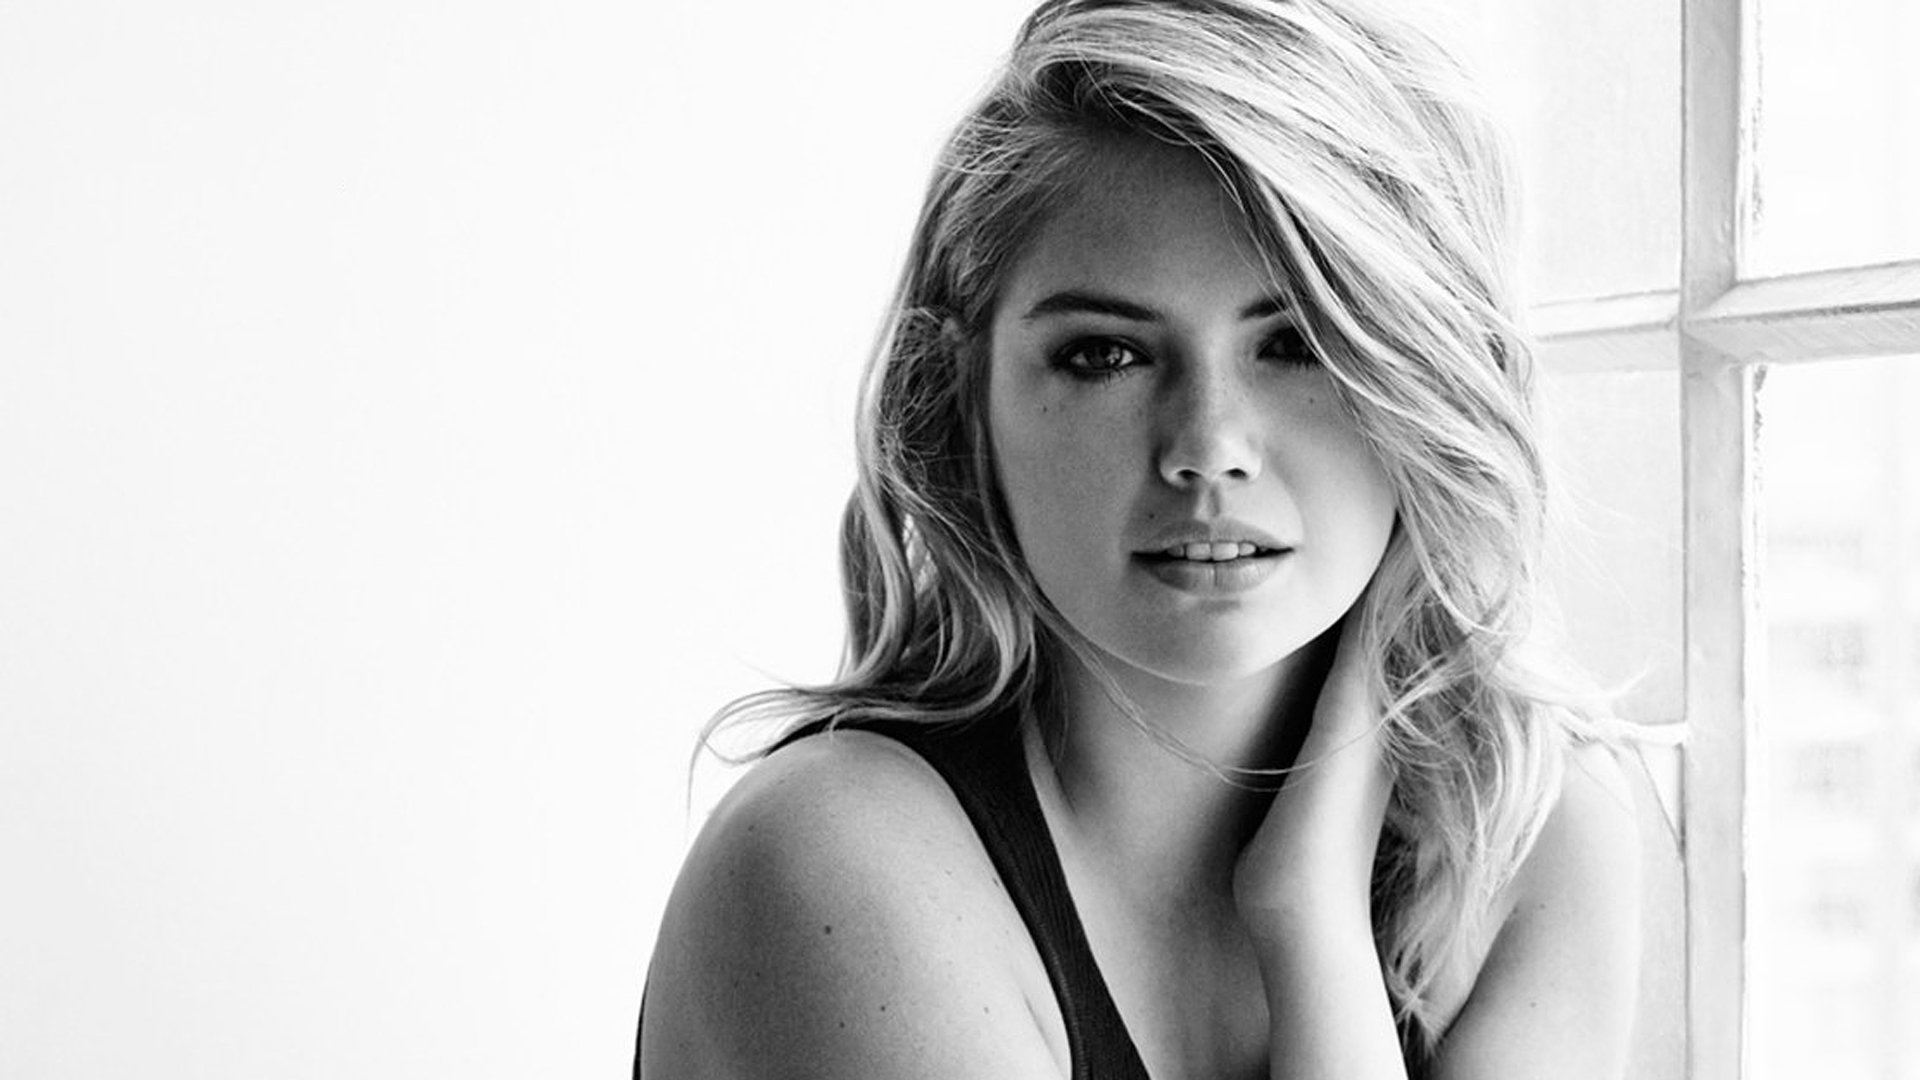 monochrome kate upton wallpaper 68430